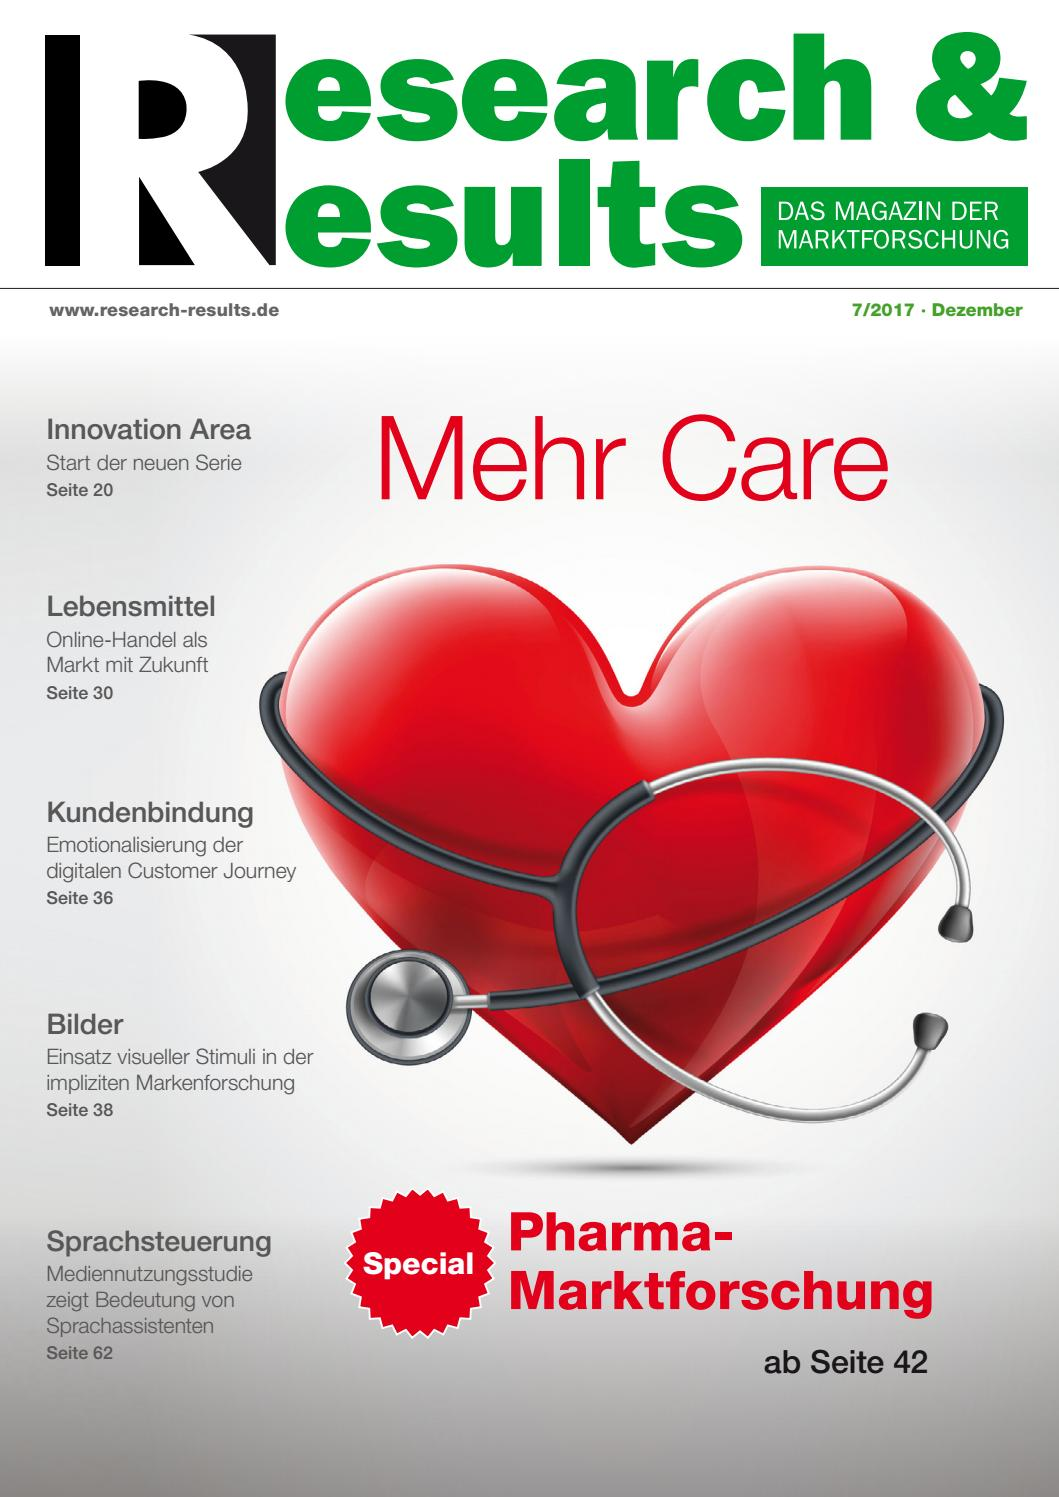 Research & Results 7/2017 by Research & Results - issuu